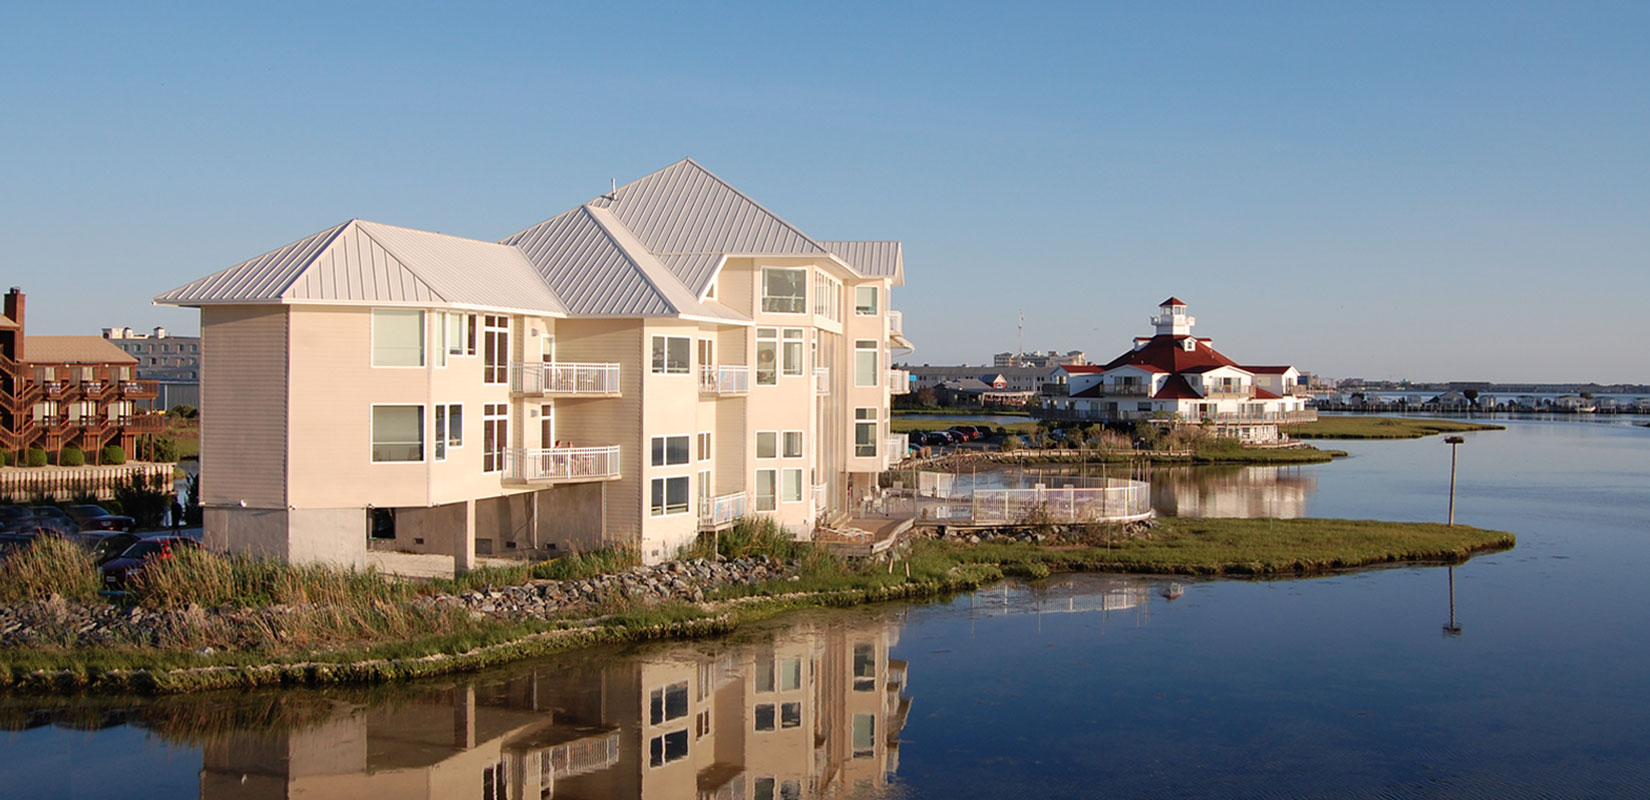 Hotels In Ocean City Md >> Unequaled Boutique Hotels In Ocean City Maryland The Edge